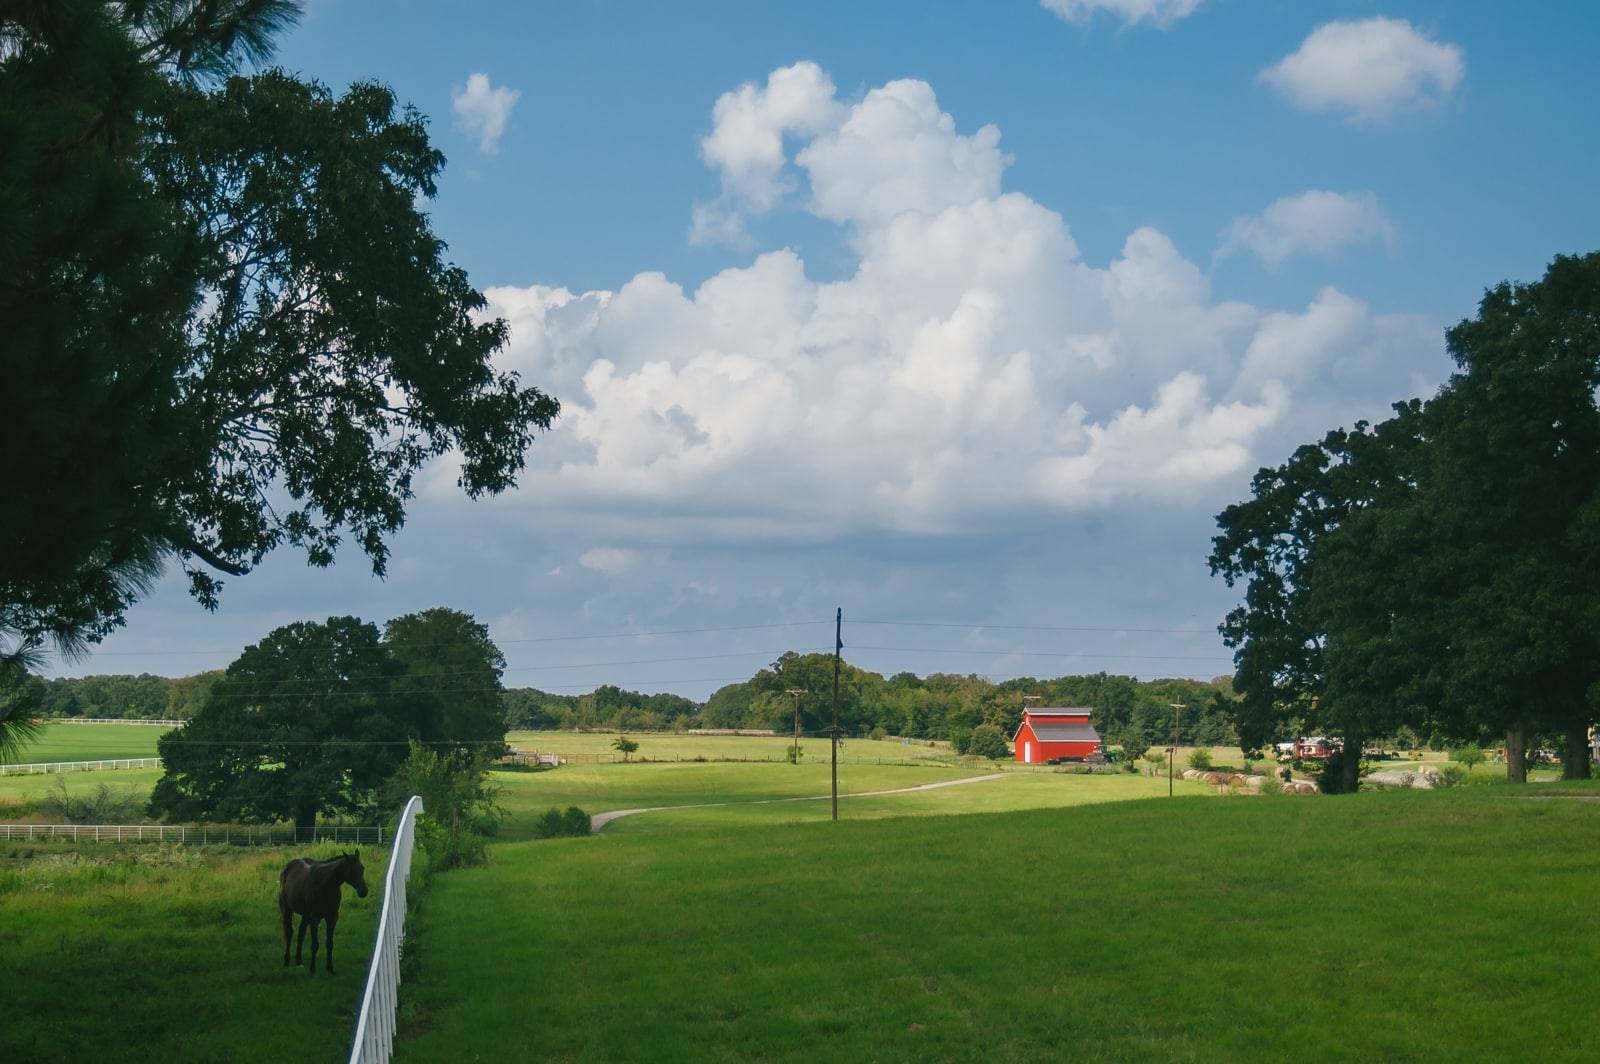 A red barn on a beautiful farm in East Texas landscape